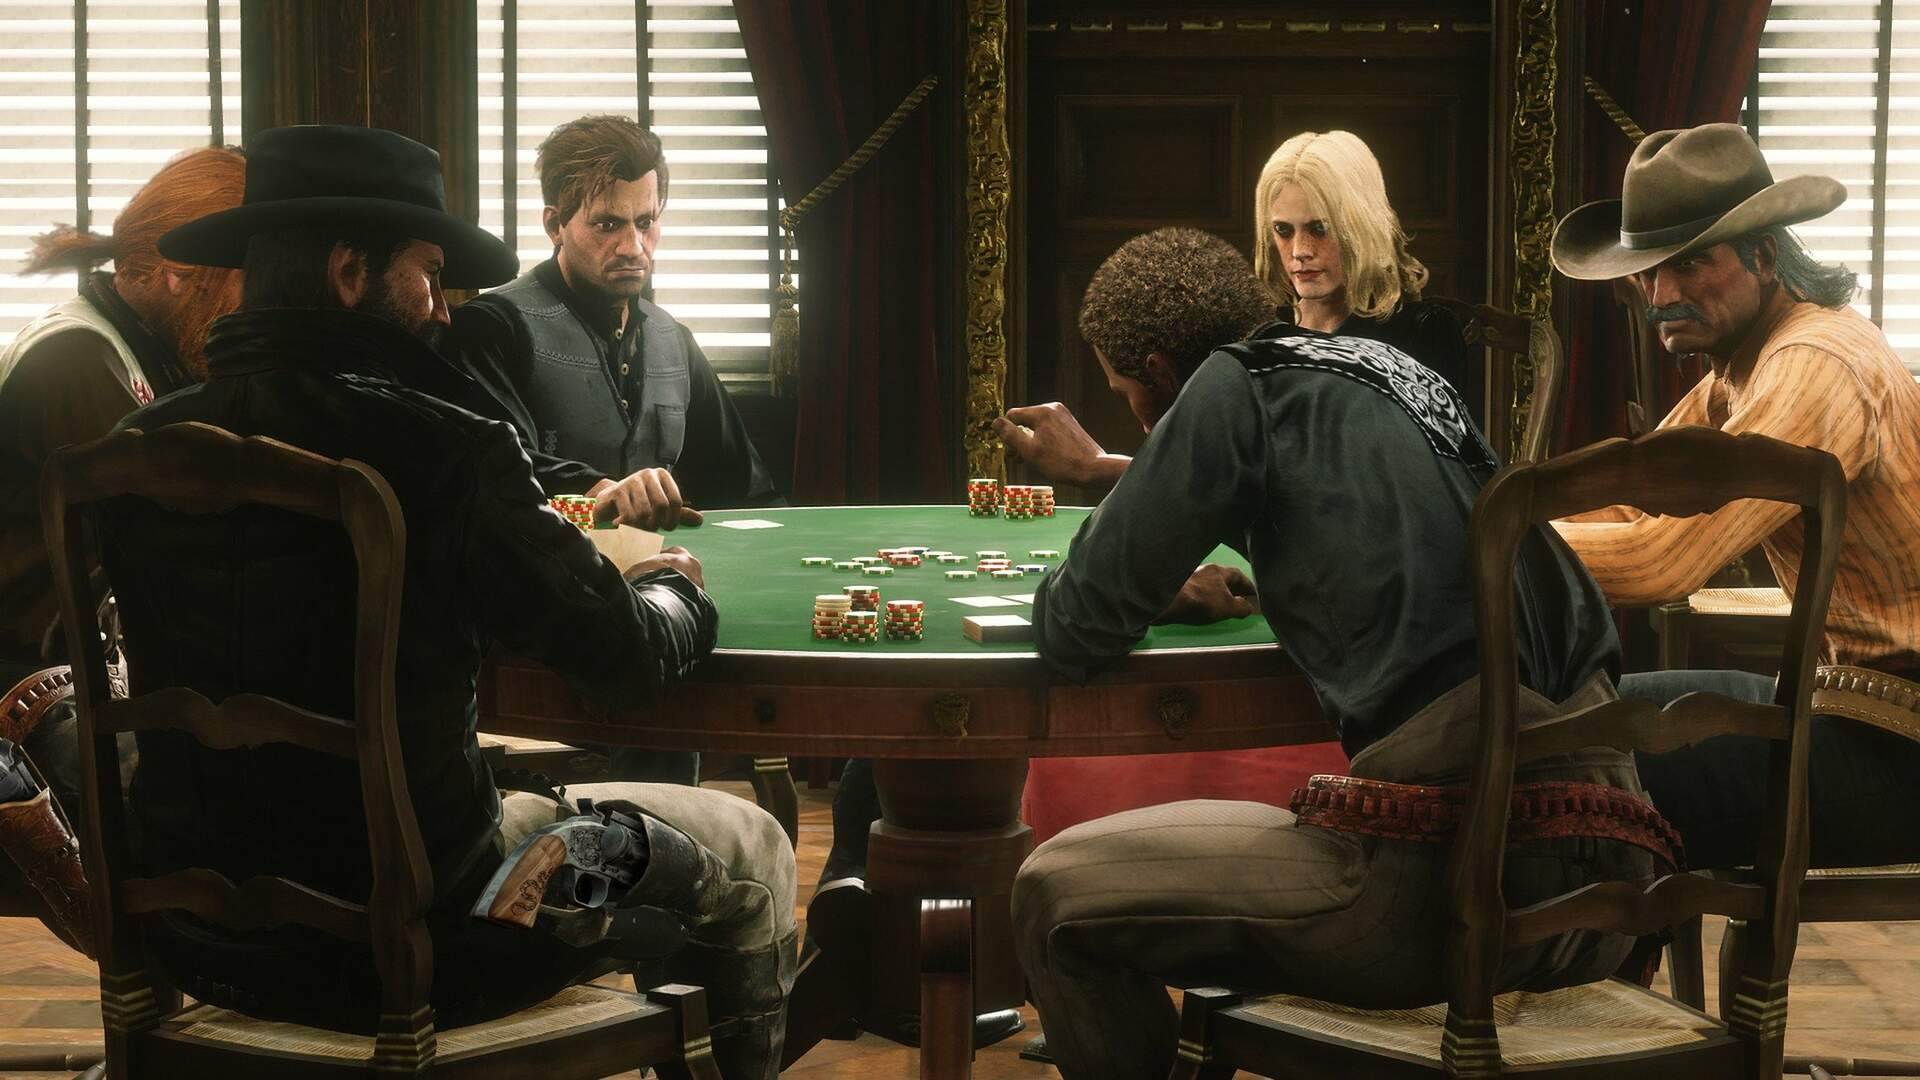 Some Red Dead Online Players Can't Play Poker Due To Regional Gambling Regulations | USgamer